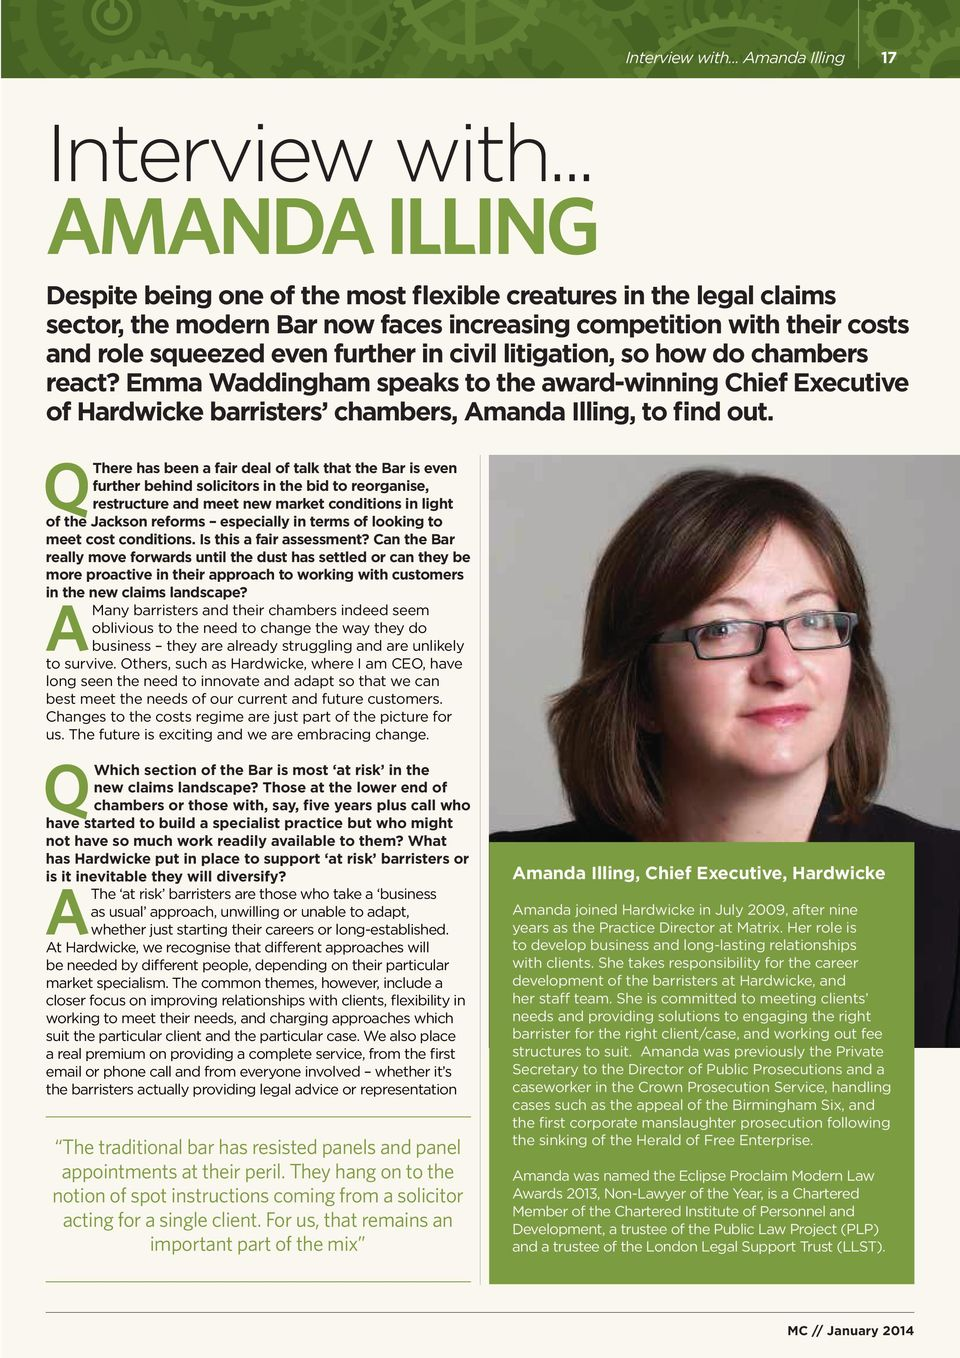 litigation, so how do chambers react? Emma Waddingham speaks to the award-winning Chief Executive of Hardwicke barristers chambers, Amanda Illing, to find out.